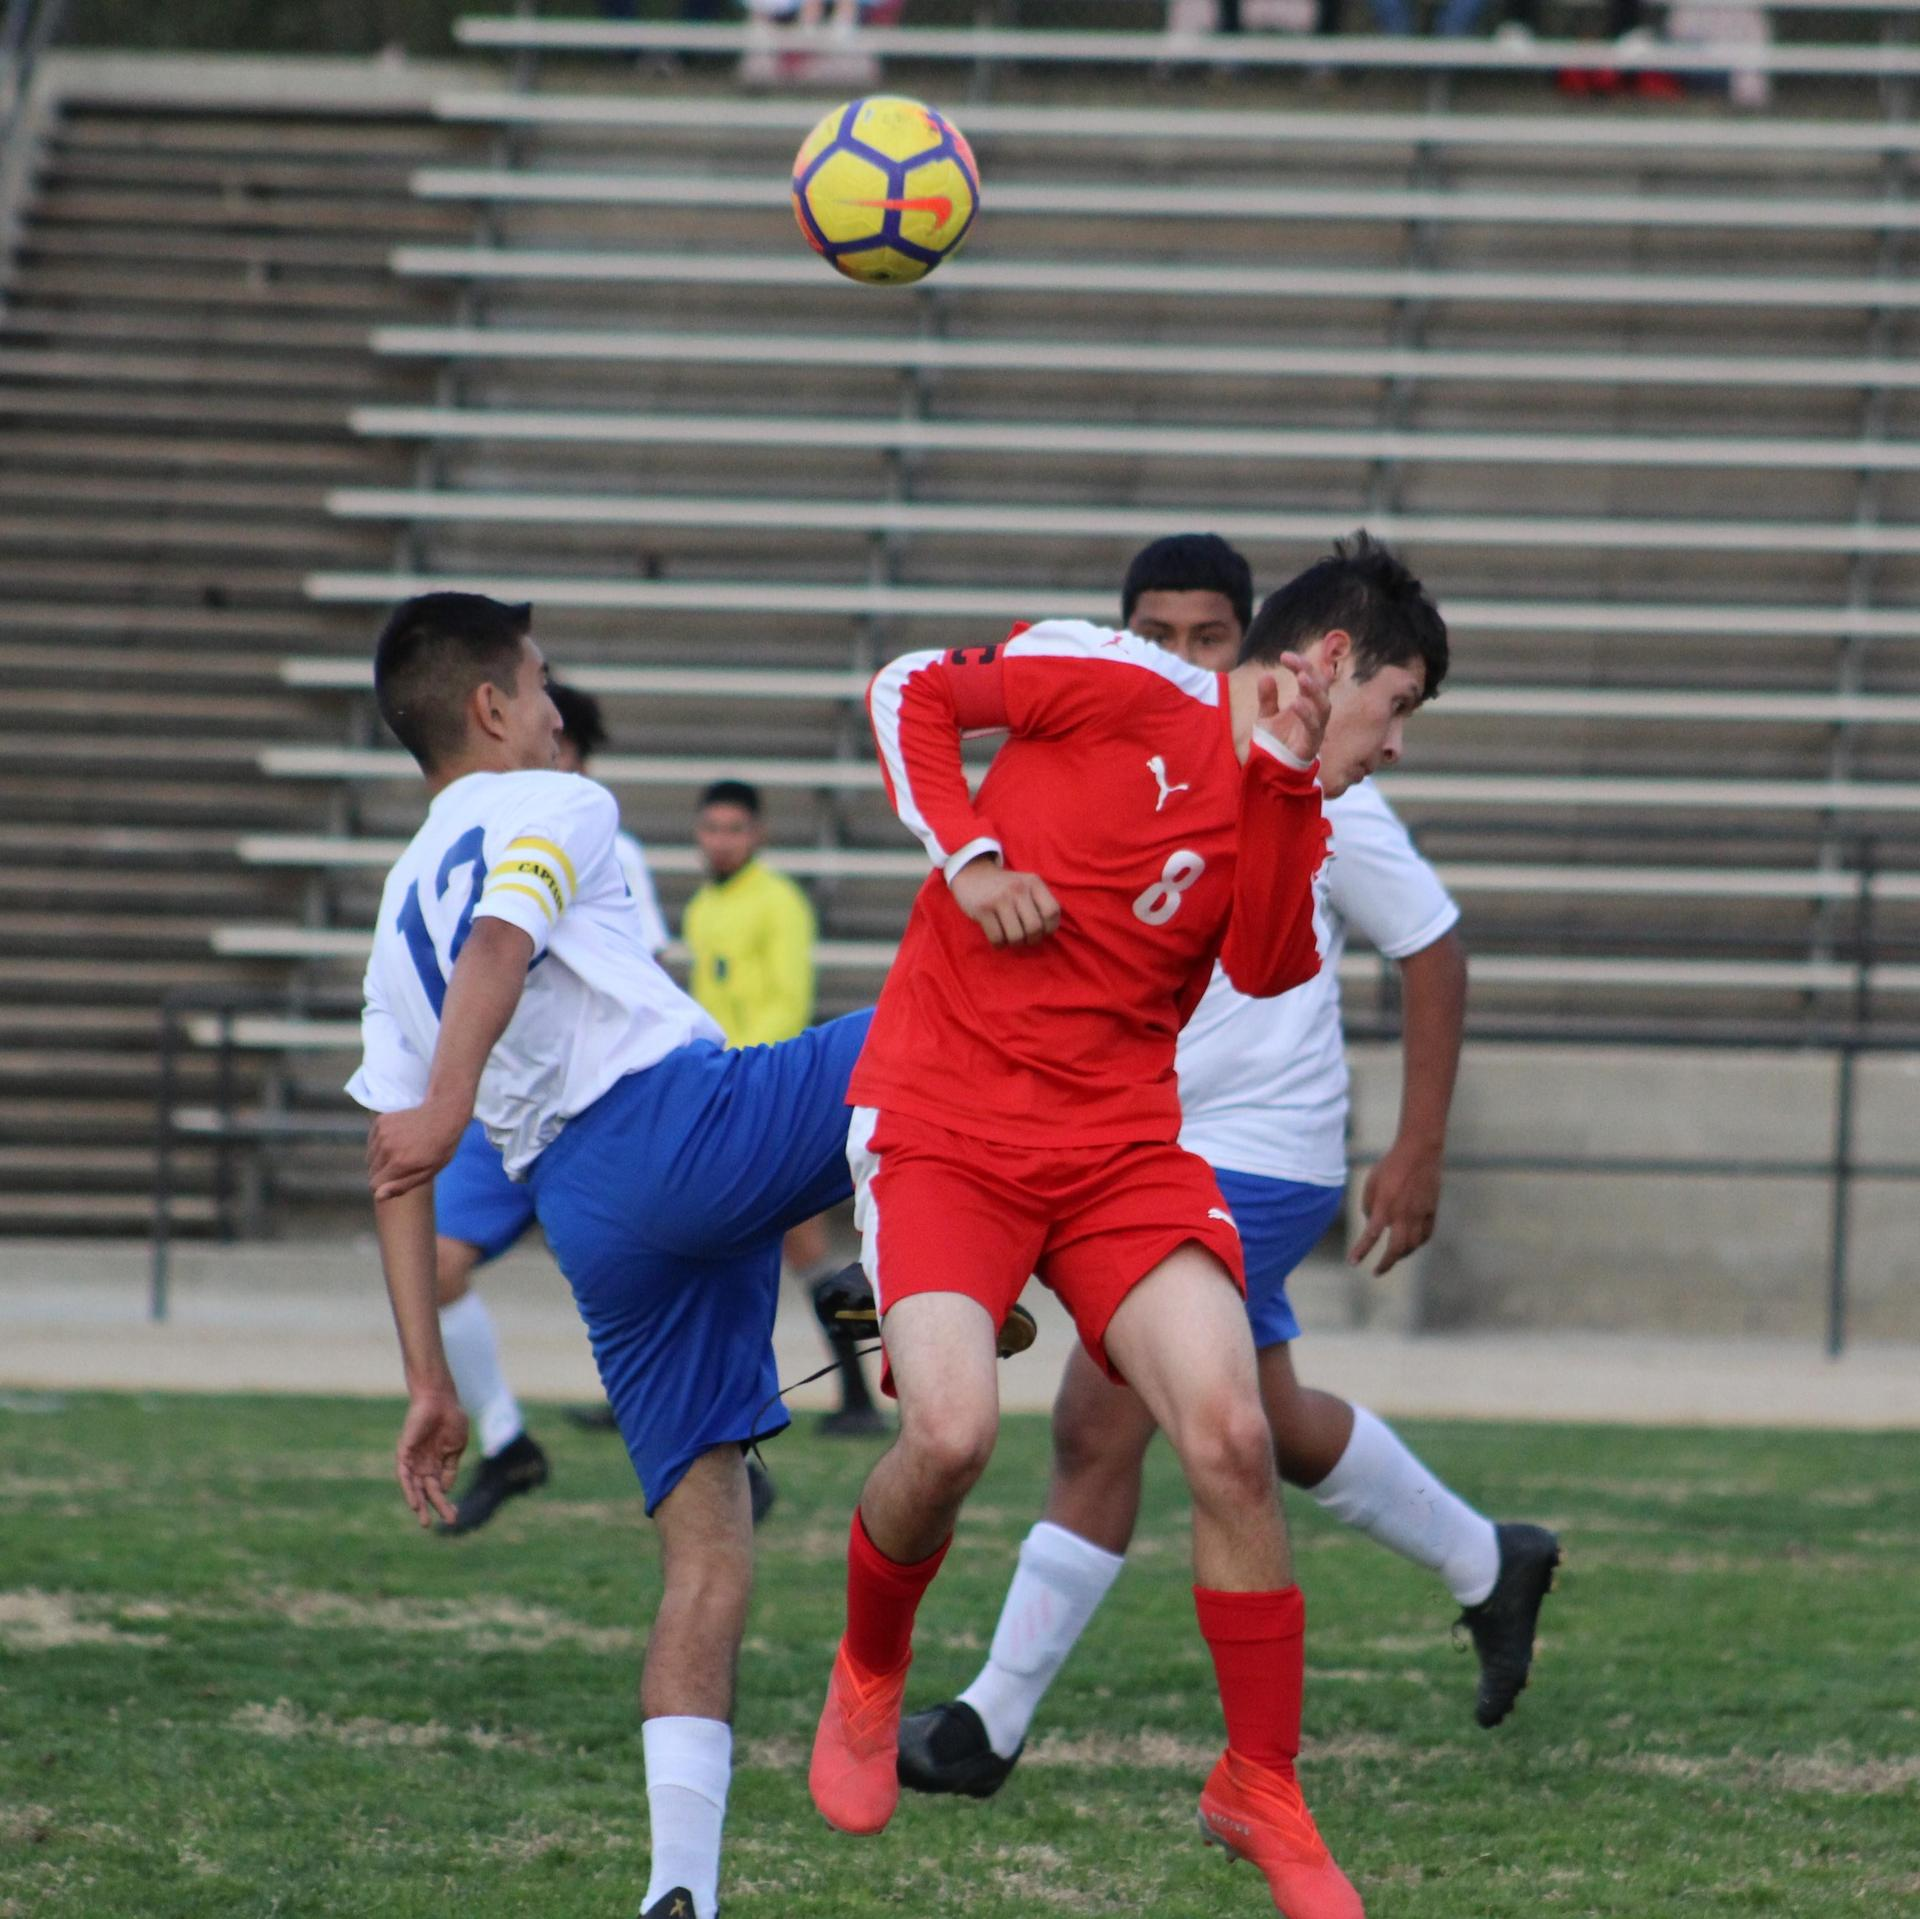 Francisco Chavez Trying to Headbutt the Ball